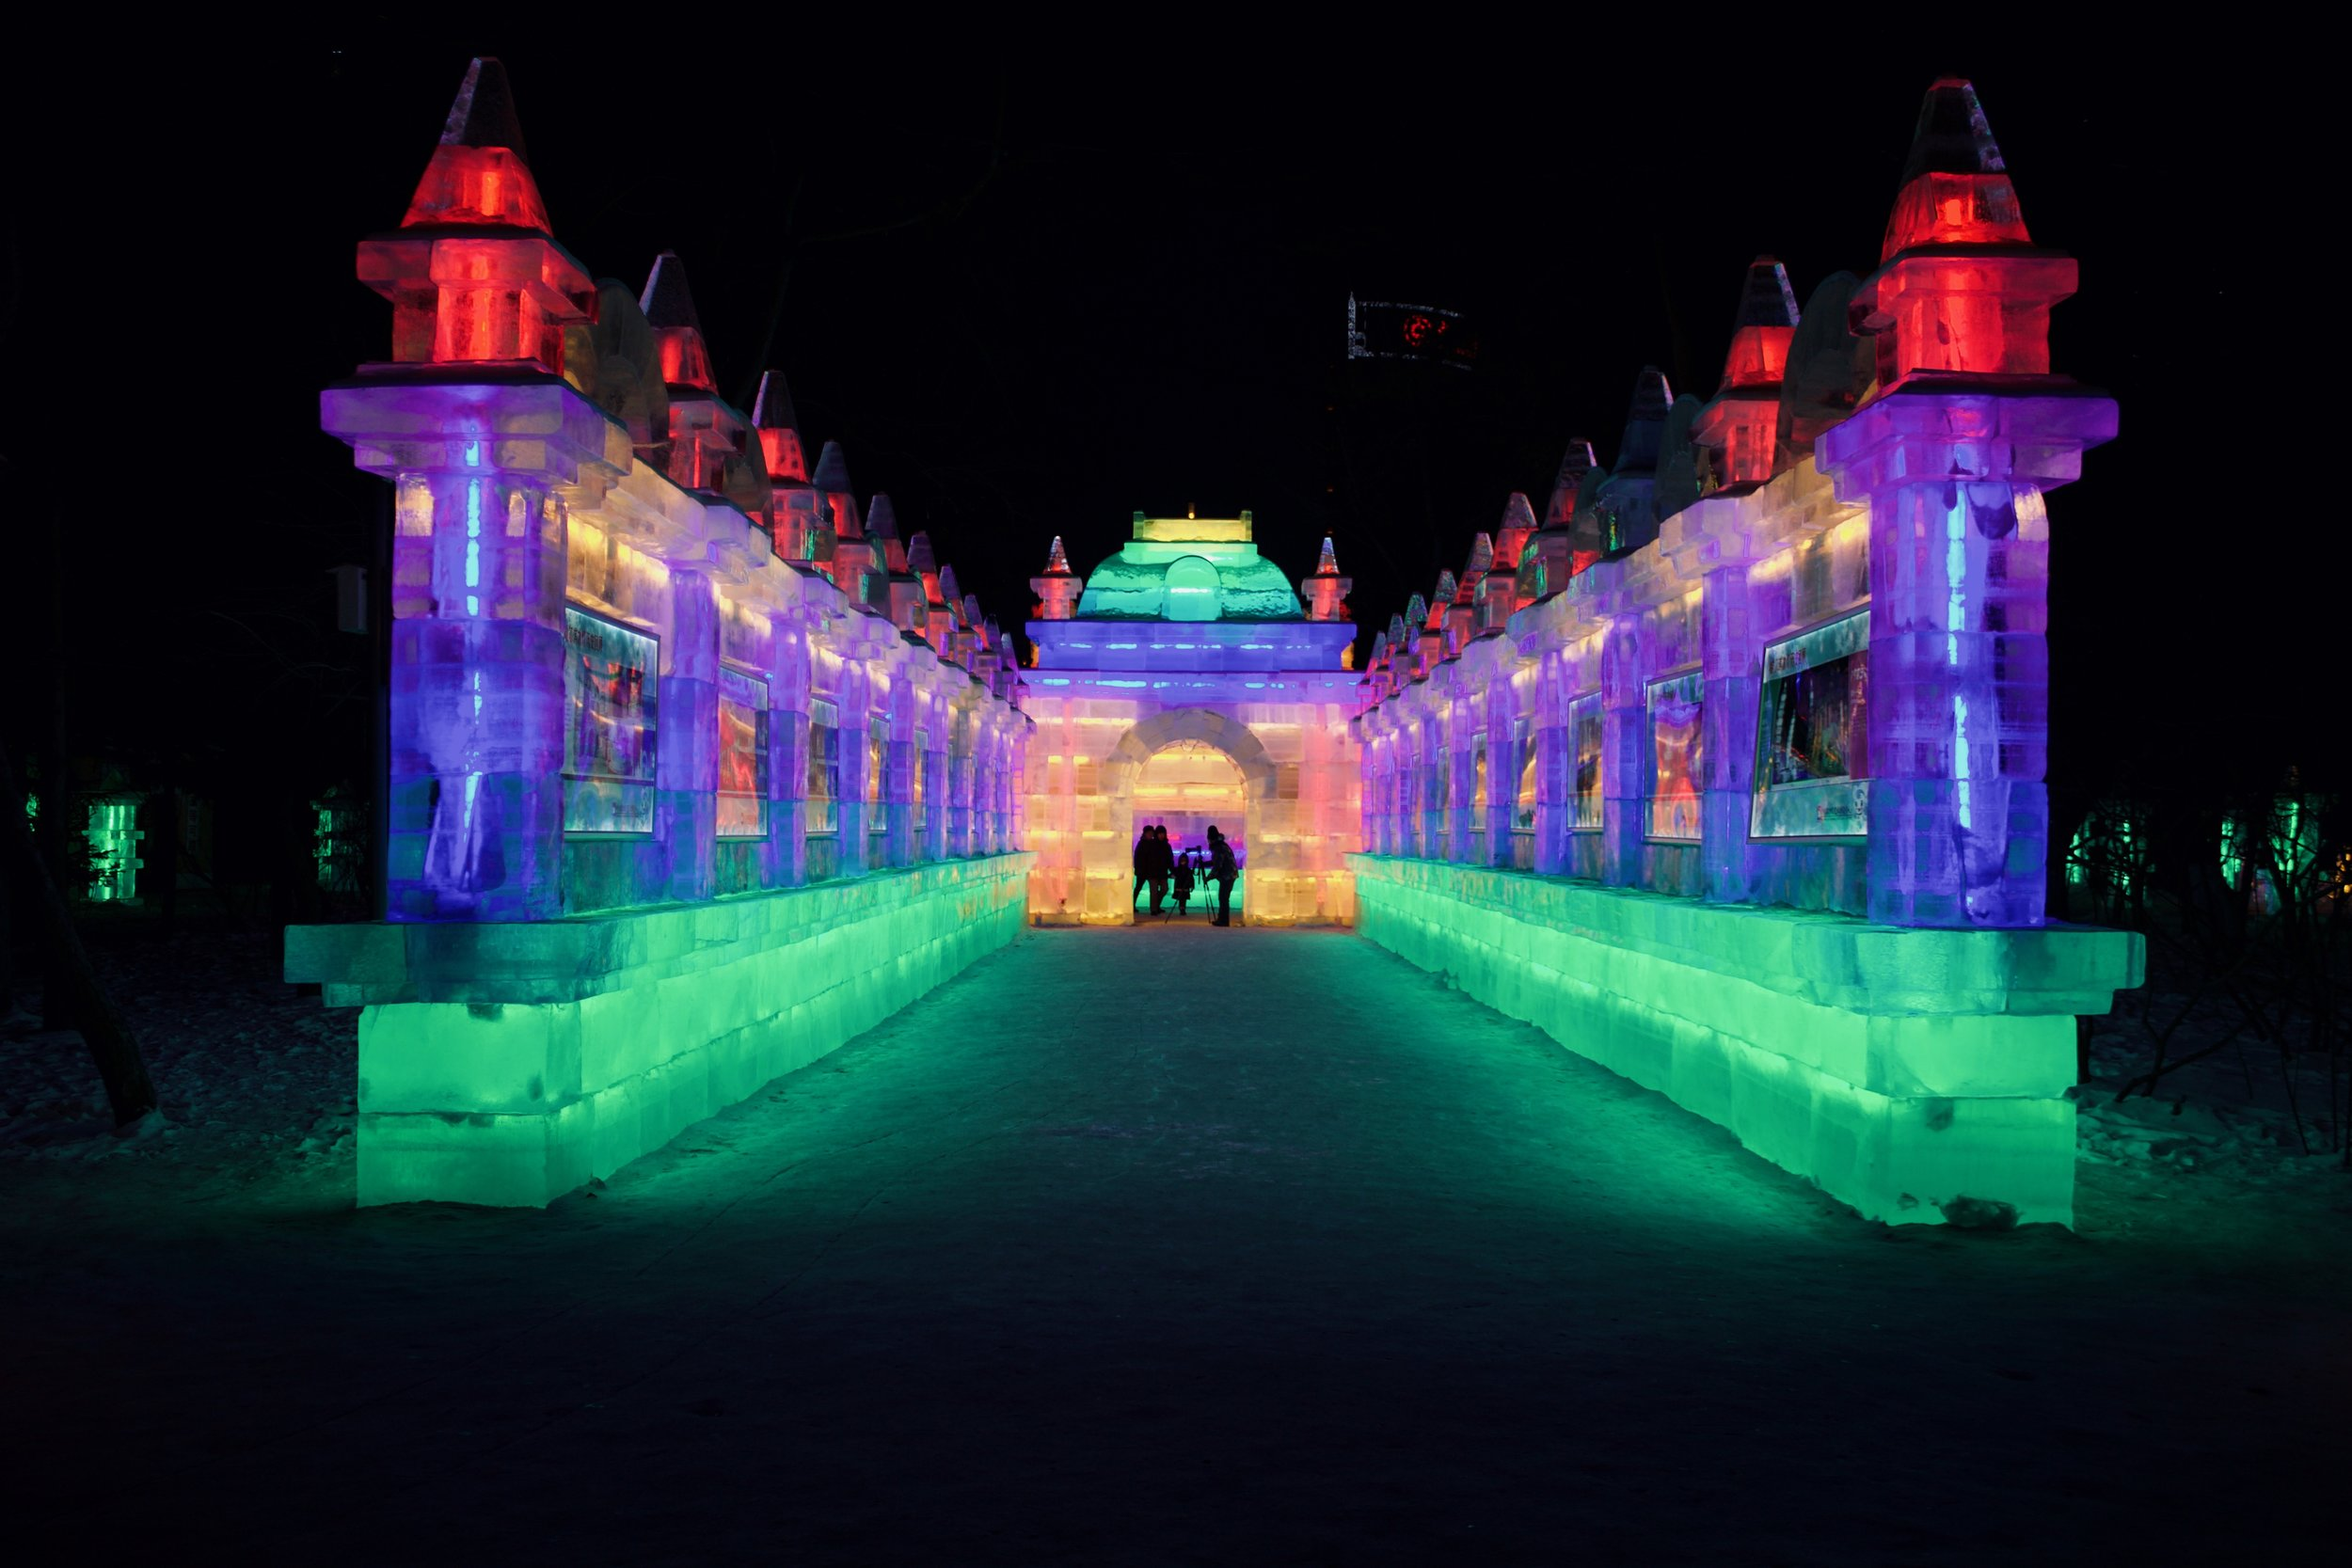 The structures are very similar to those at the Ice and Snow festival but in a smaller scale.